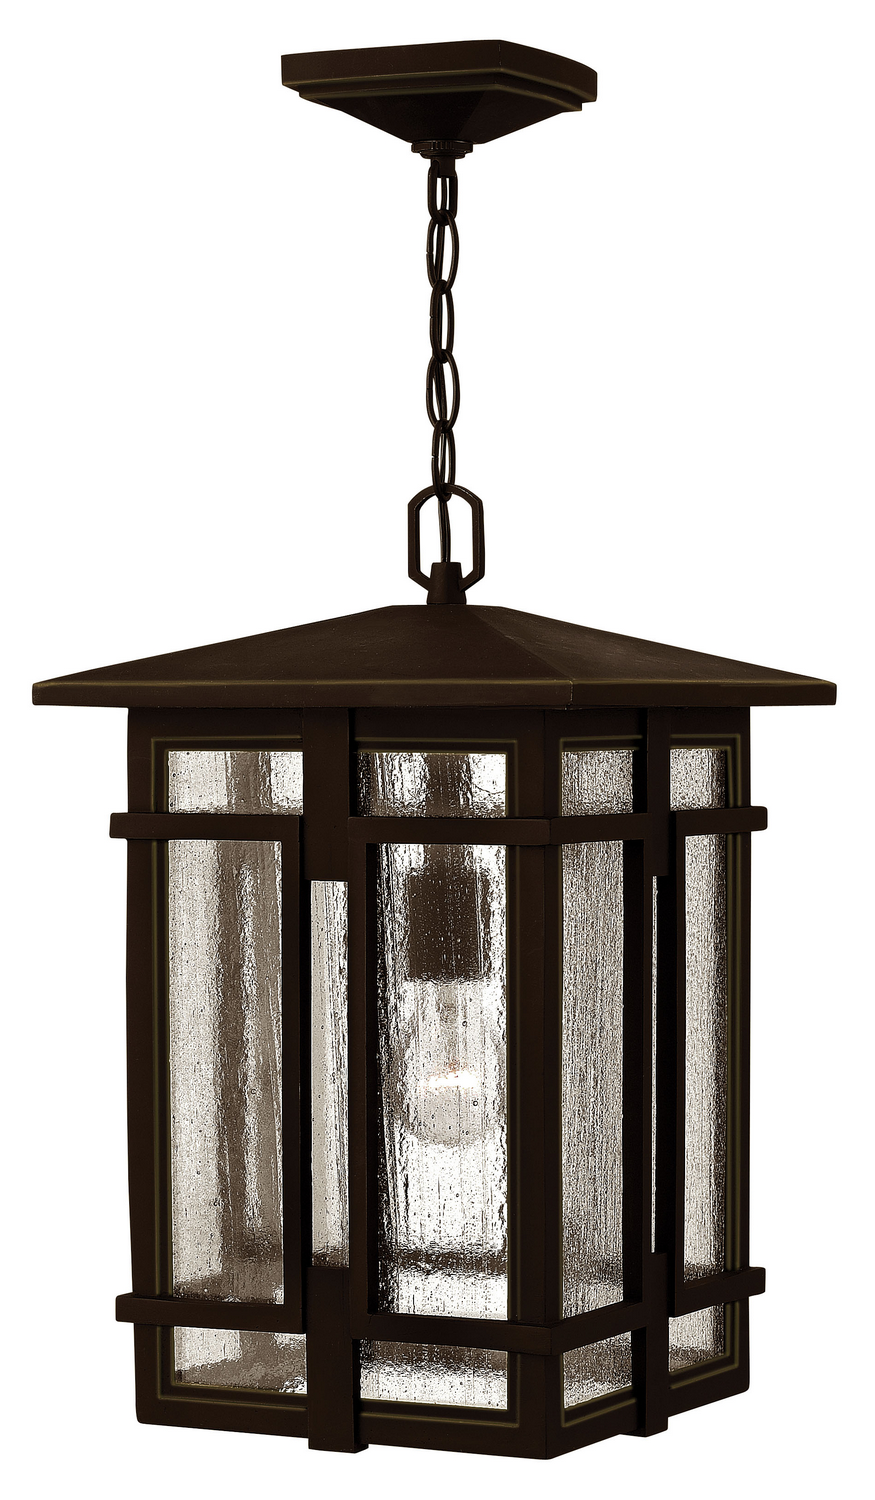 Hinkley Tucker Hanging Lantern craftsman lighting